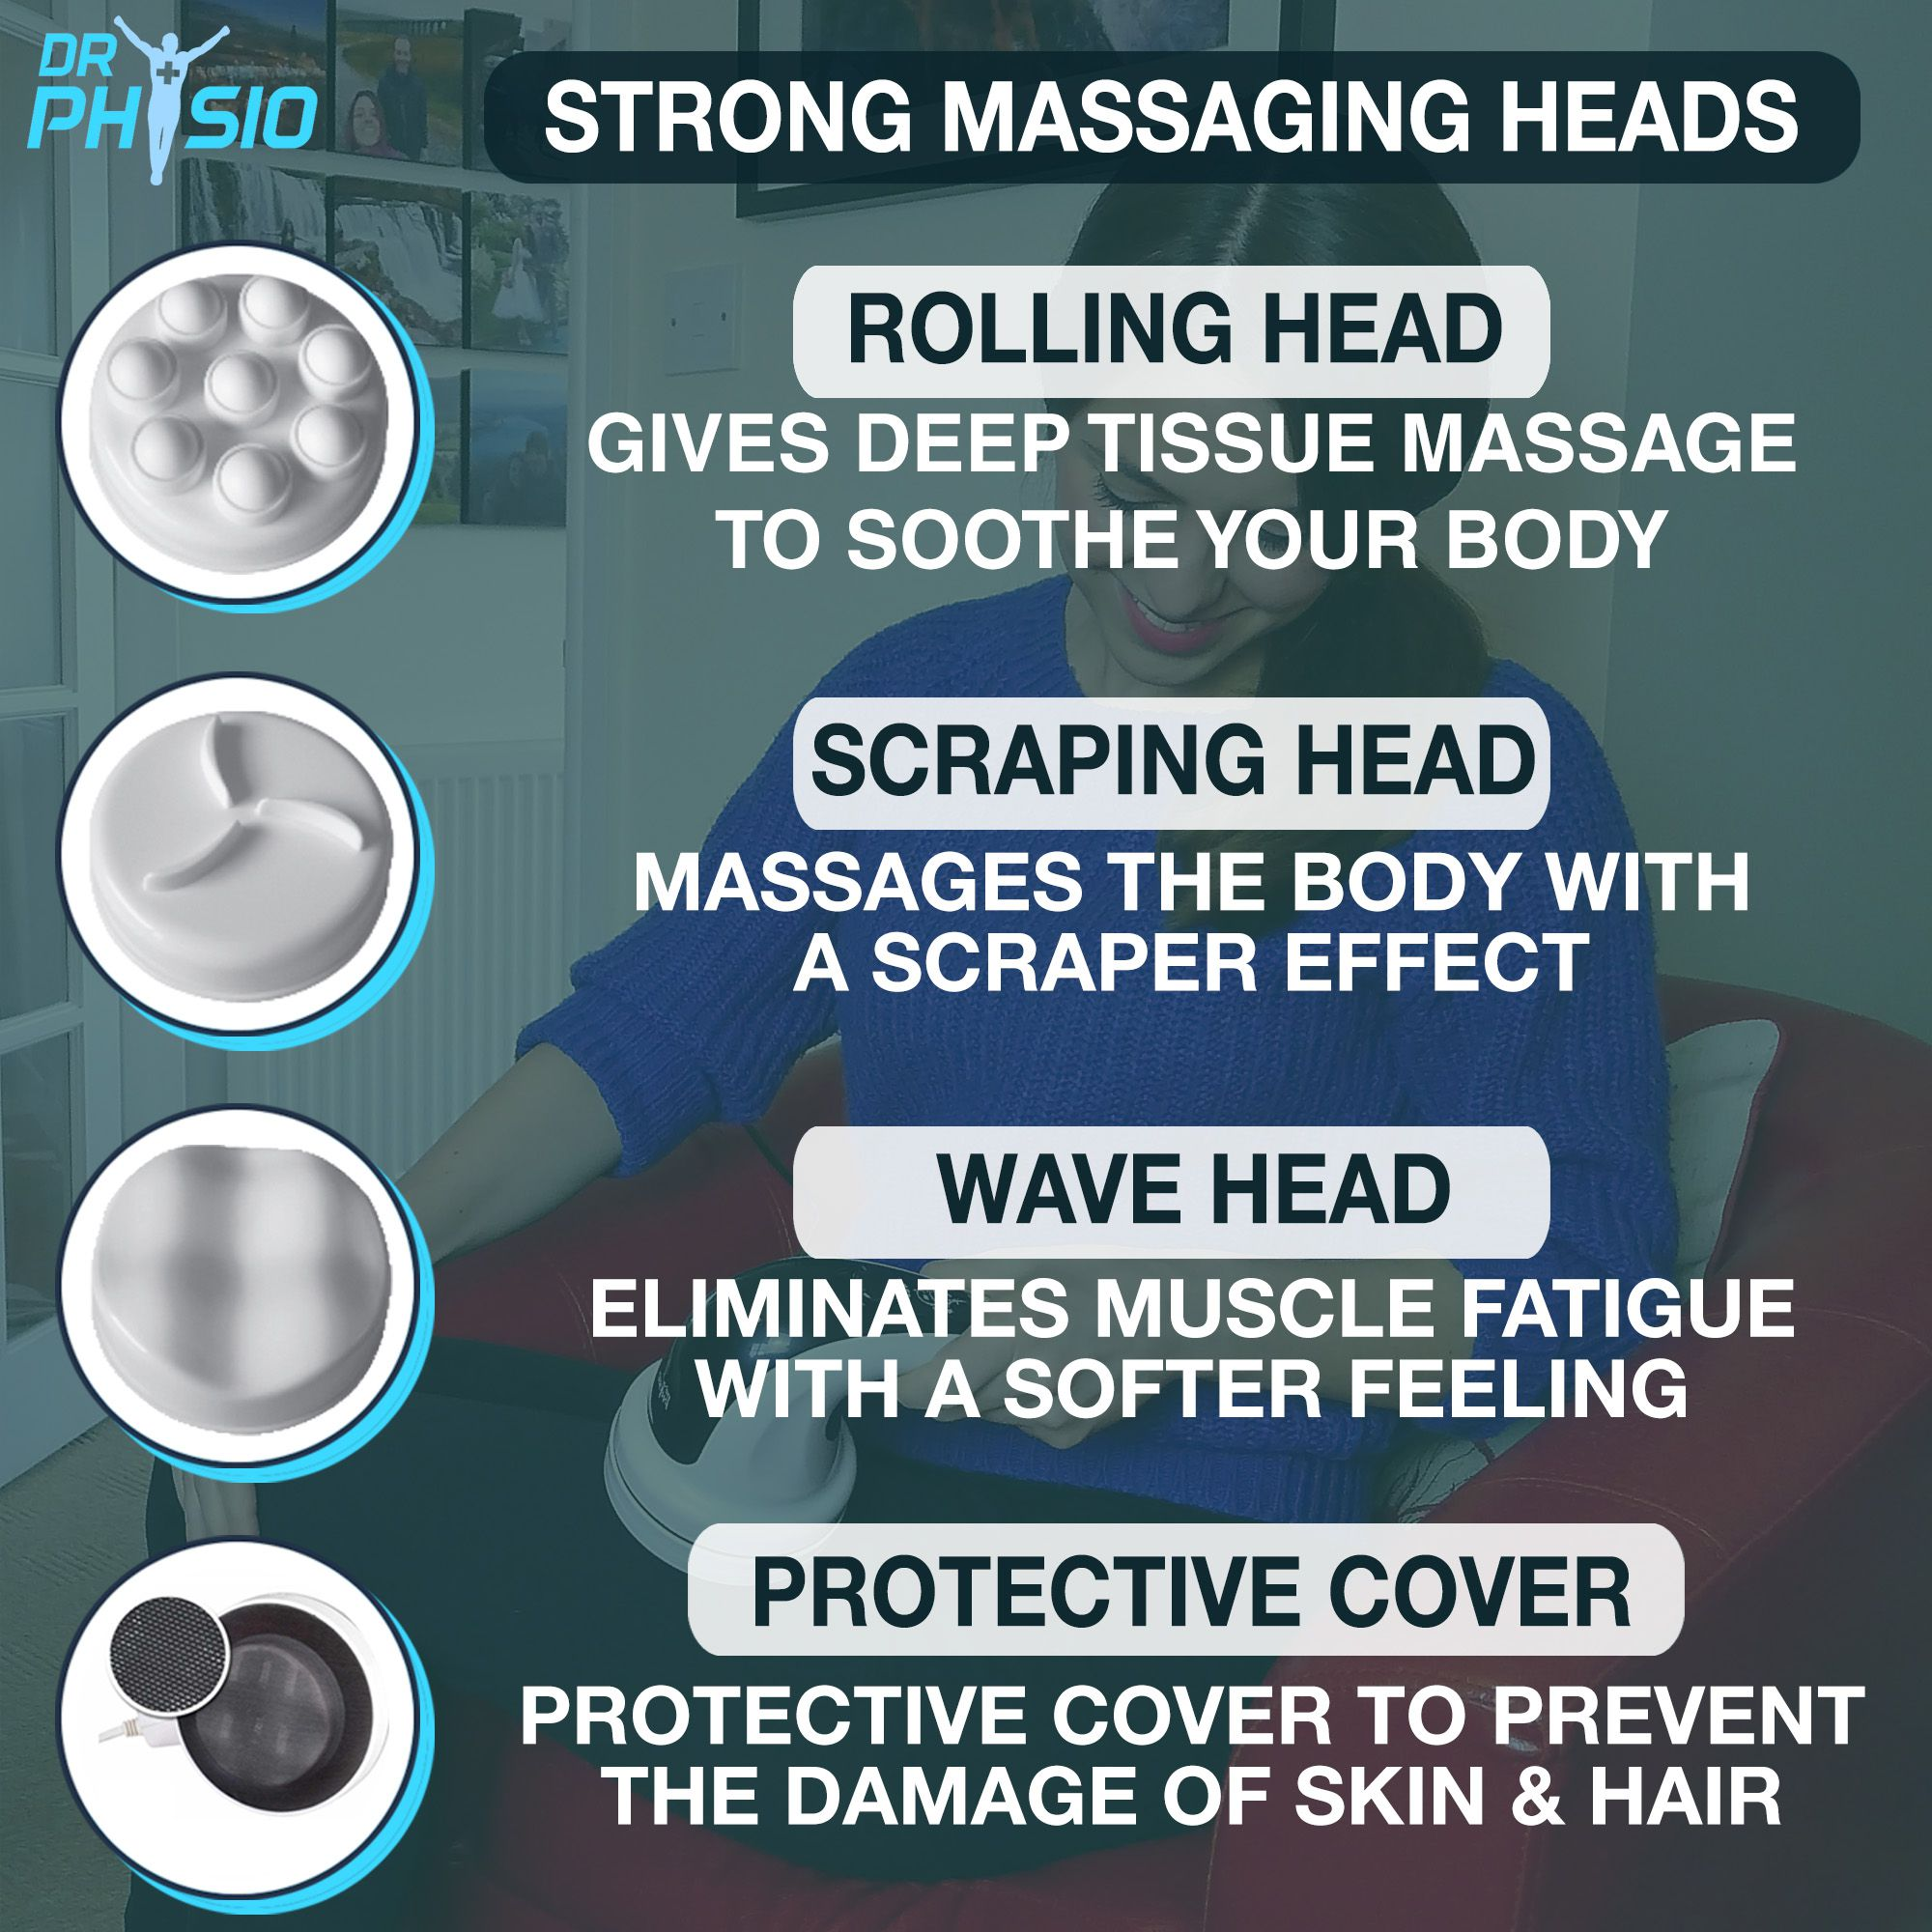 DrPhysio USA POWERFUL FULL BODY MASSAGER MASSAGE MACHINE for PAIN